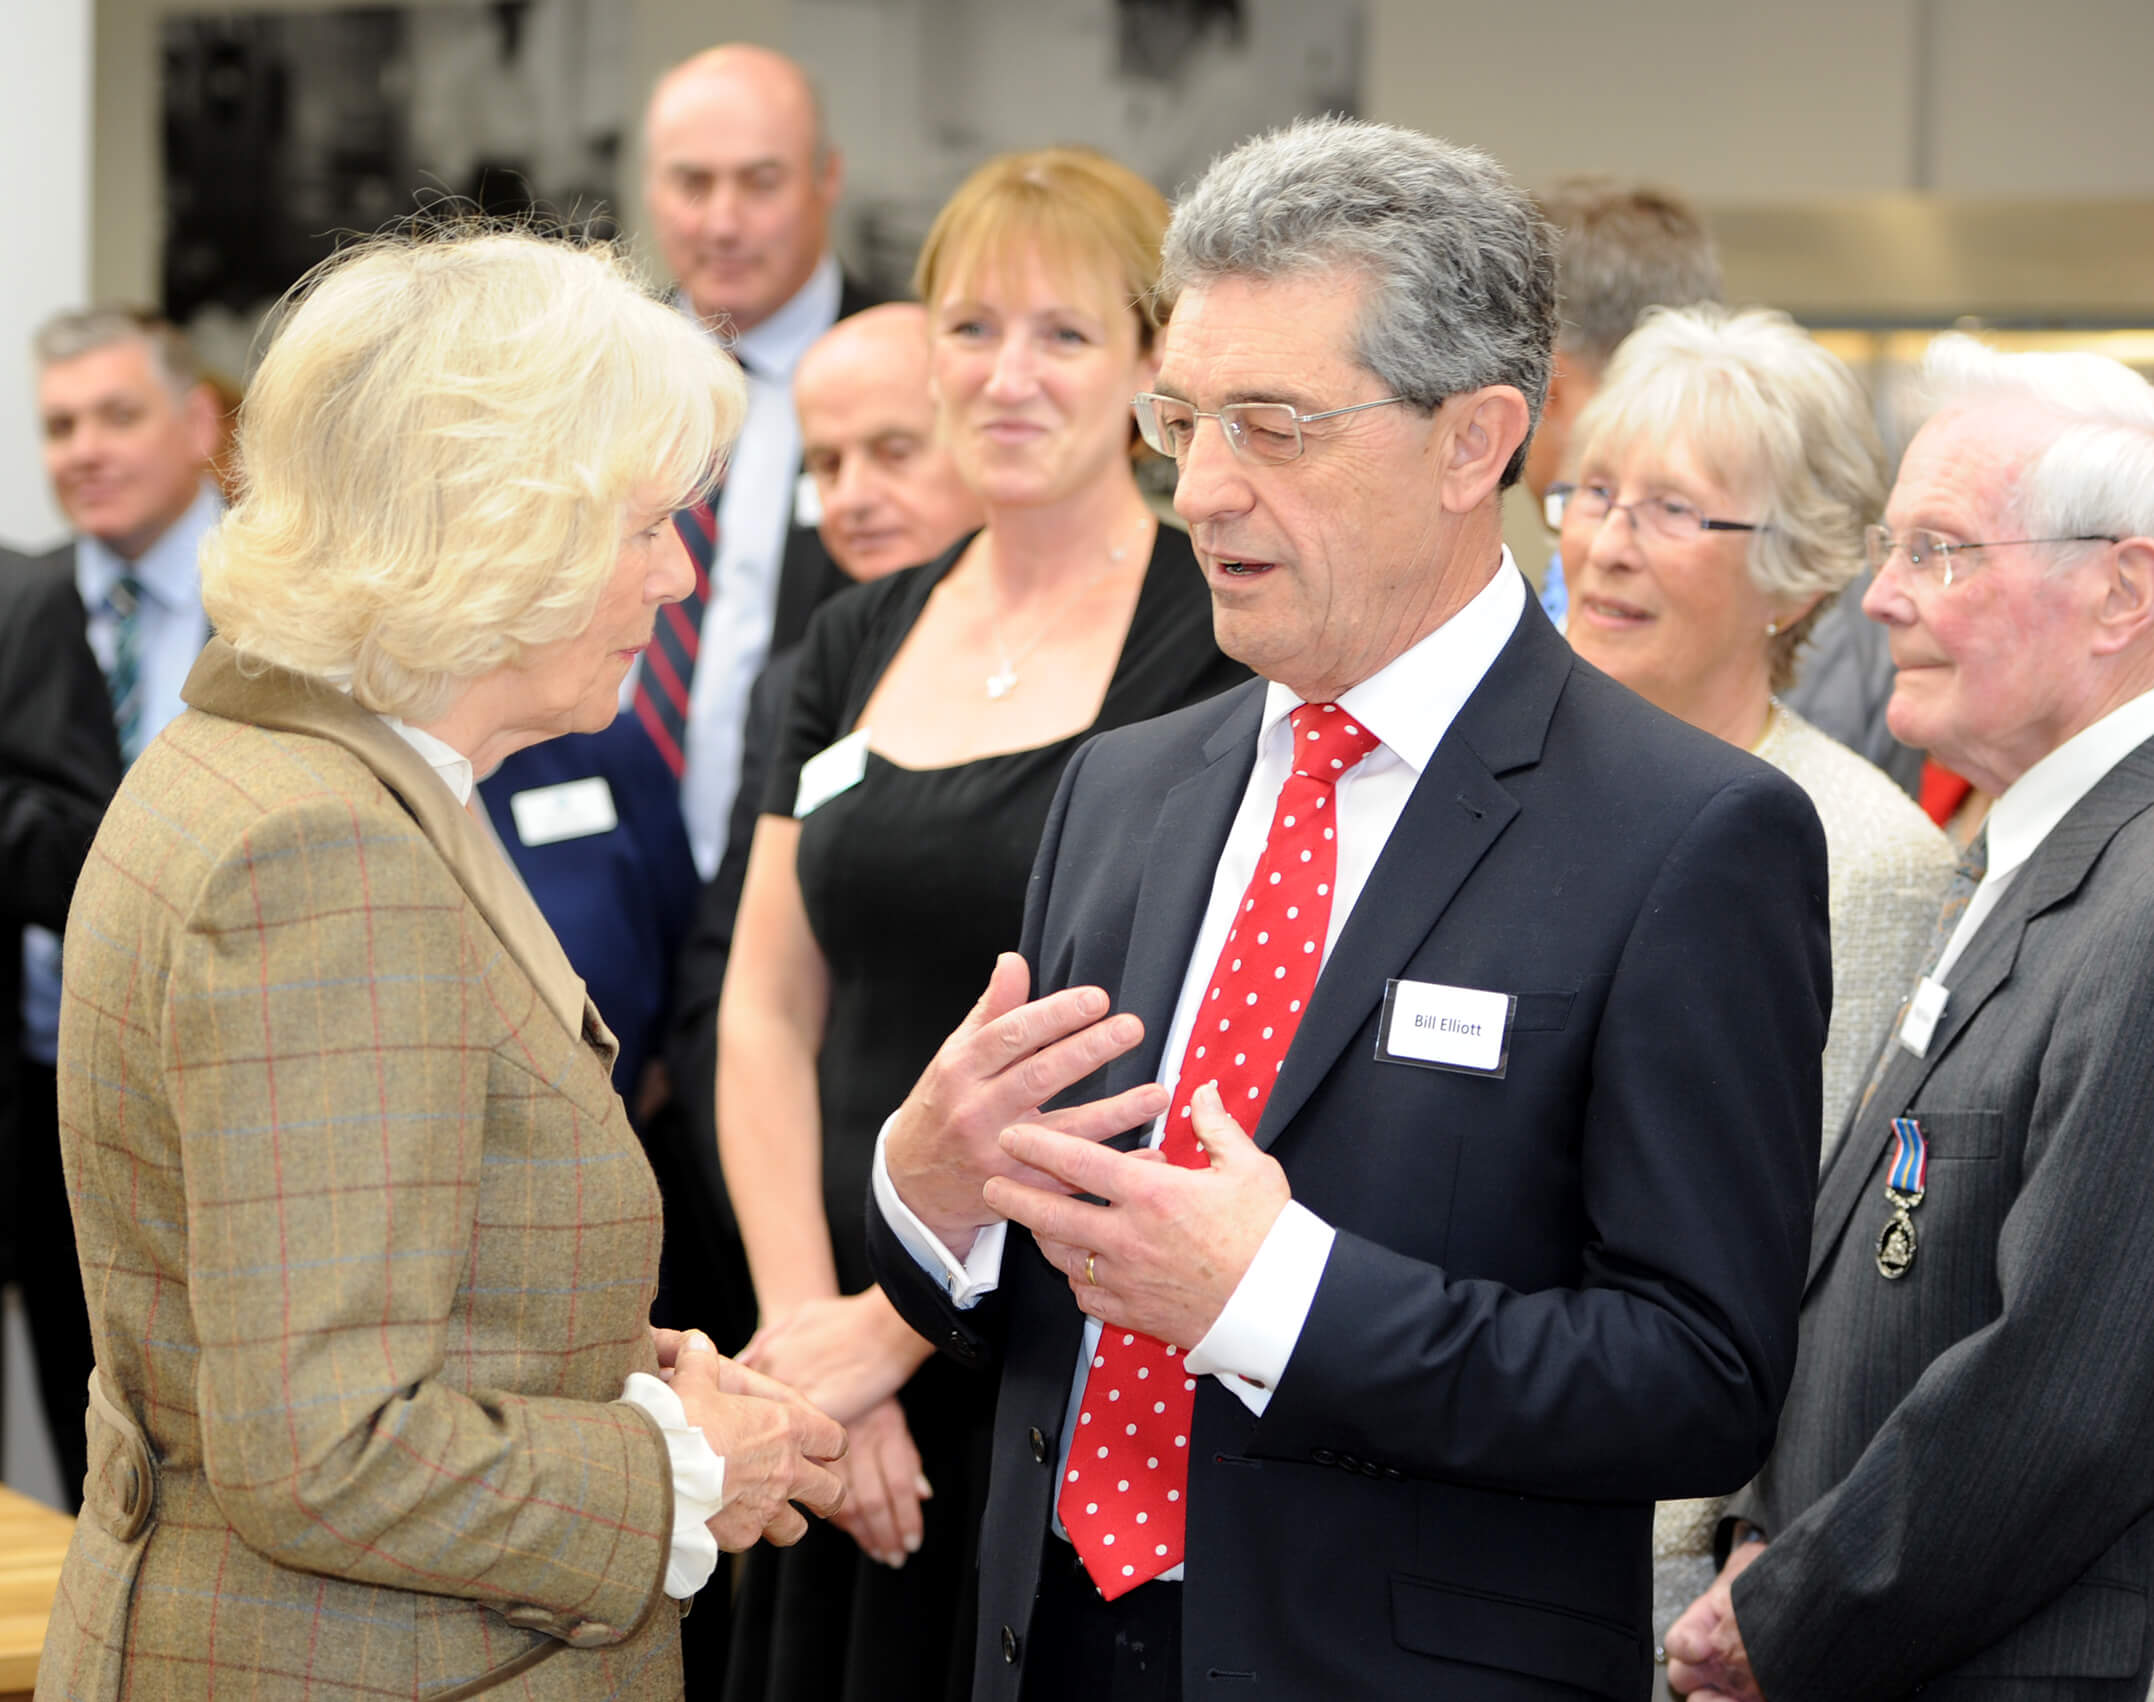 Photo of Bill Elliott being presented to HRH Duchess of Cornwall